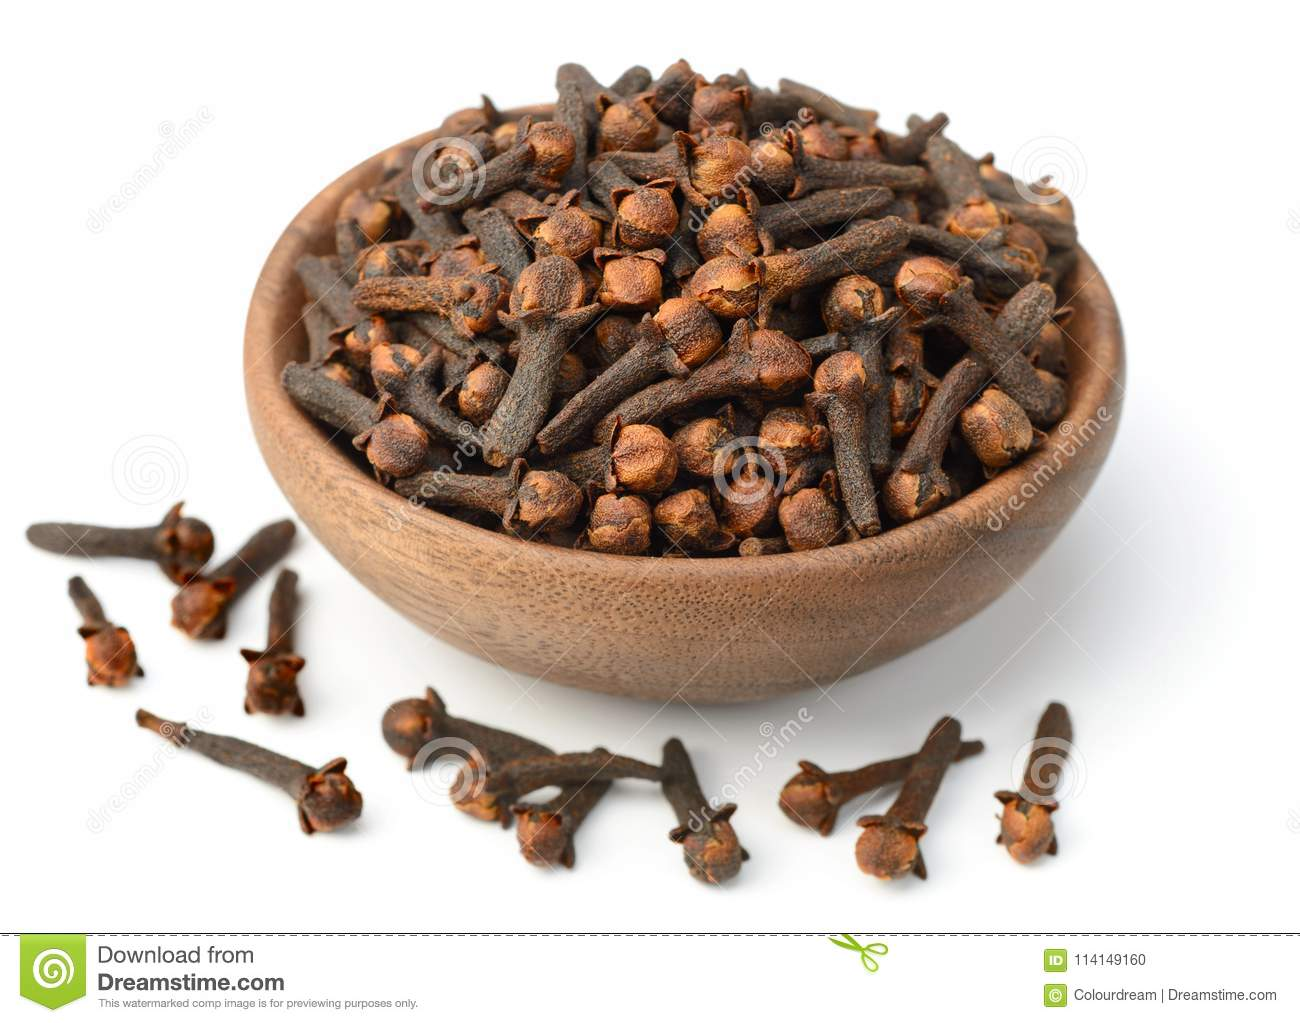 Dried herb, dried cloves in the wooden plate, on white